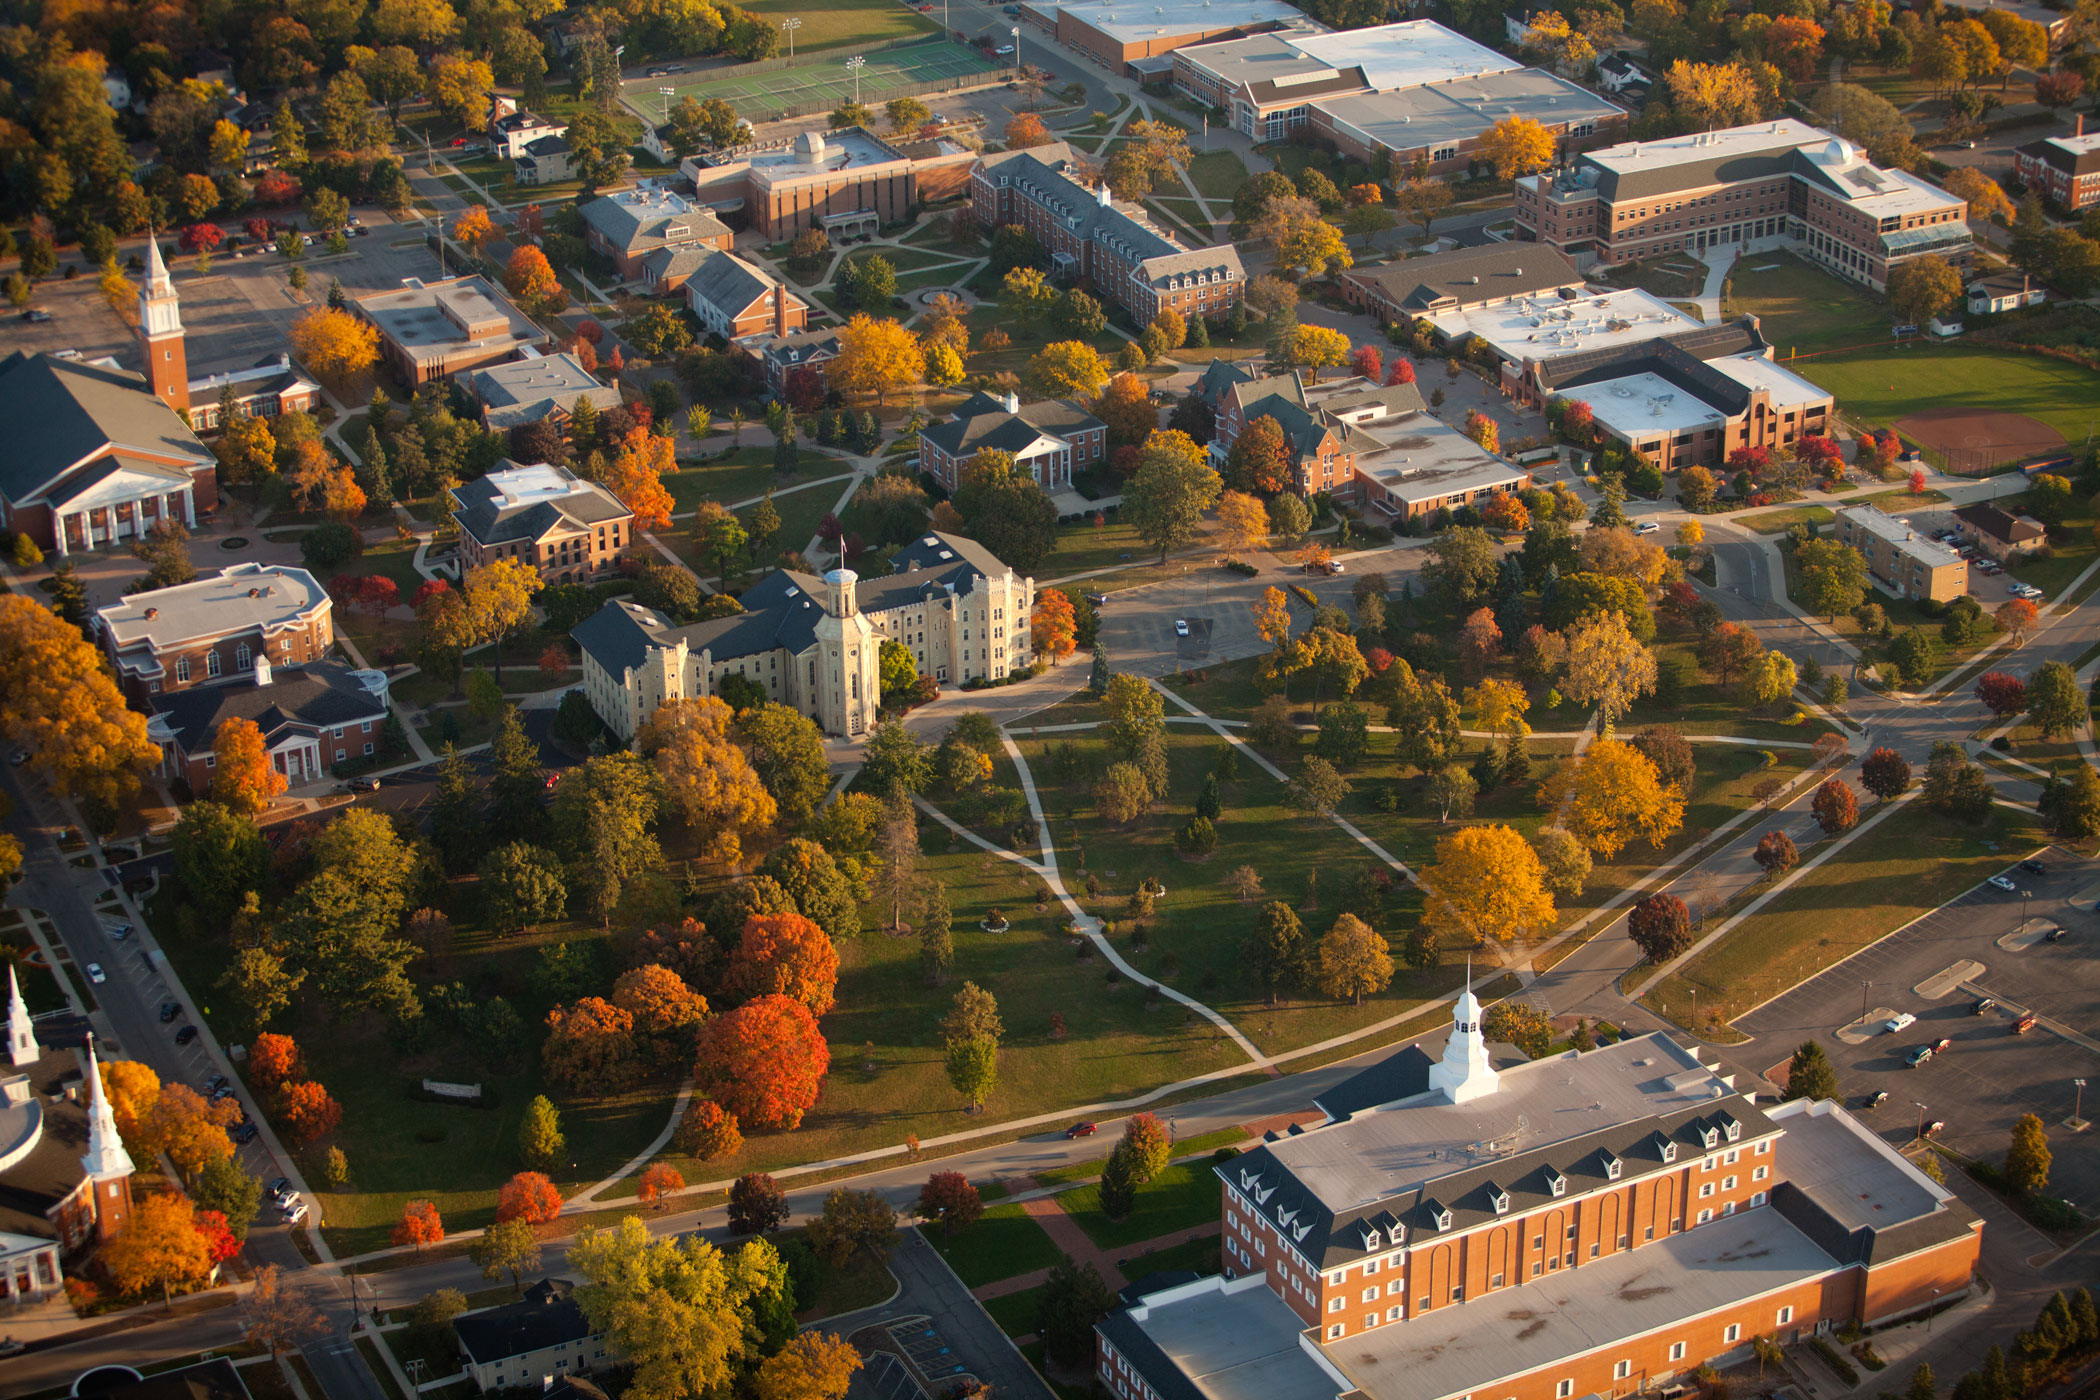 Aerial view of Wheaton College campus